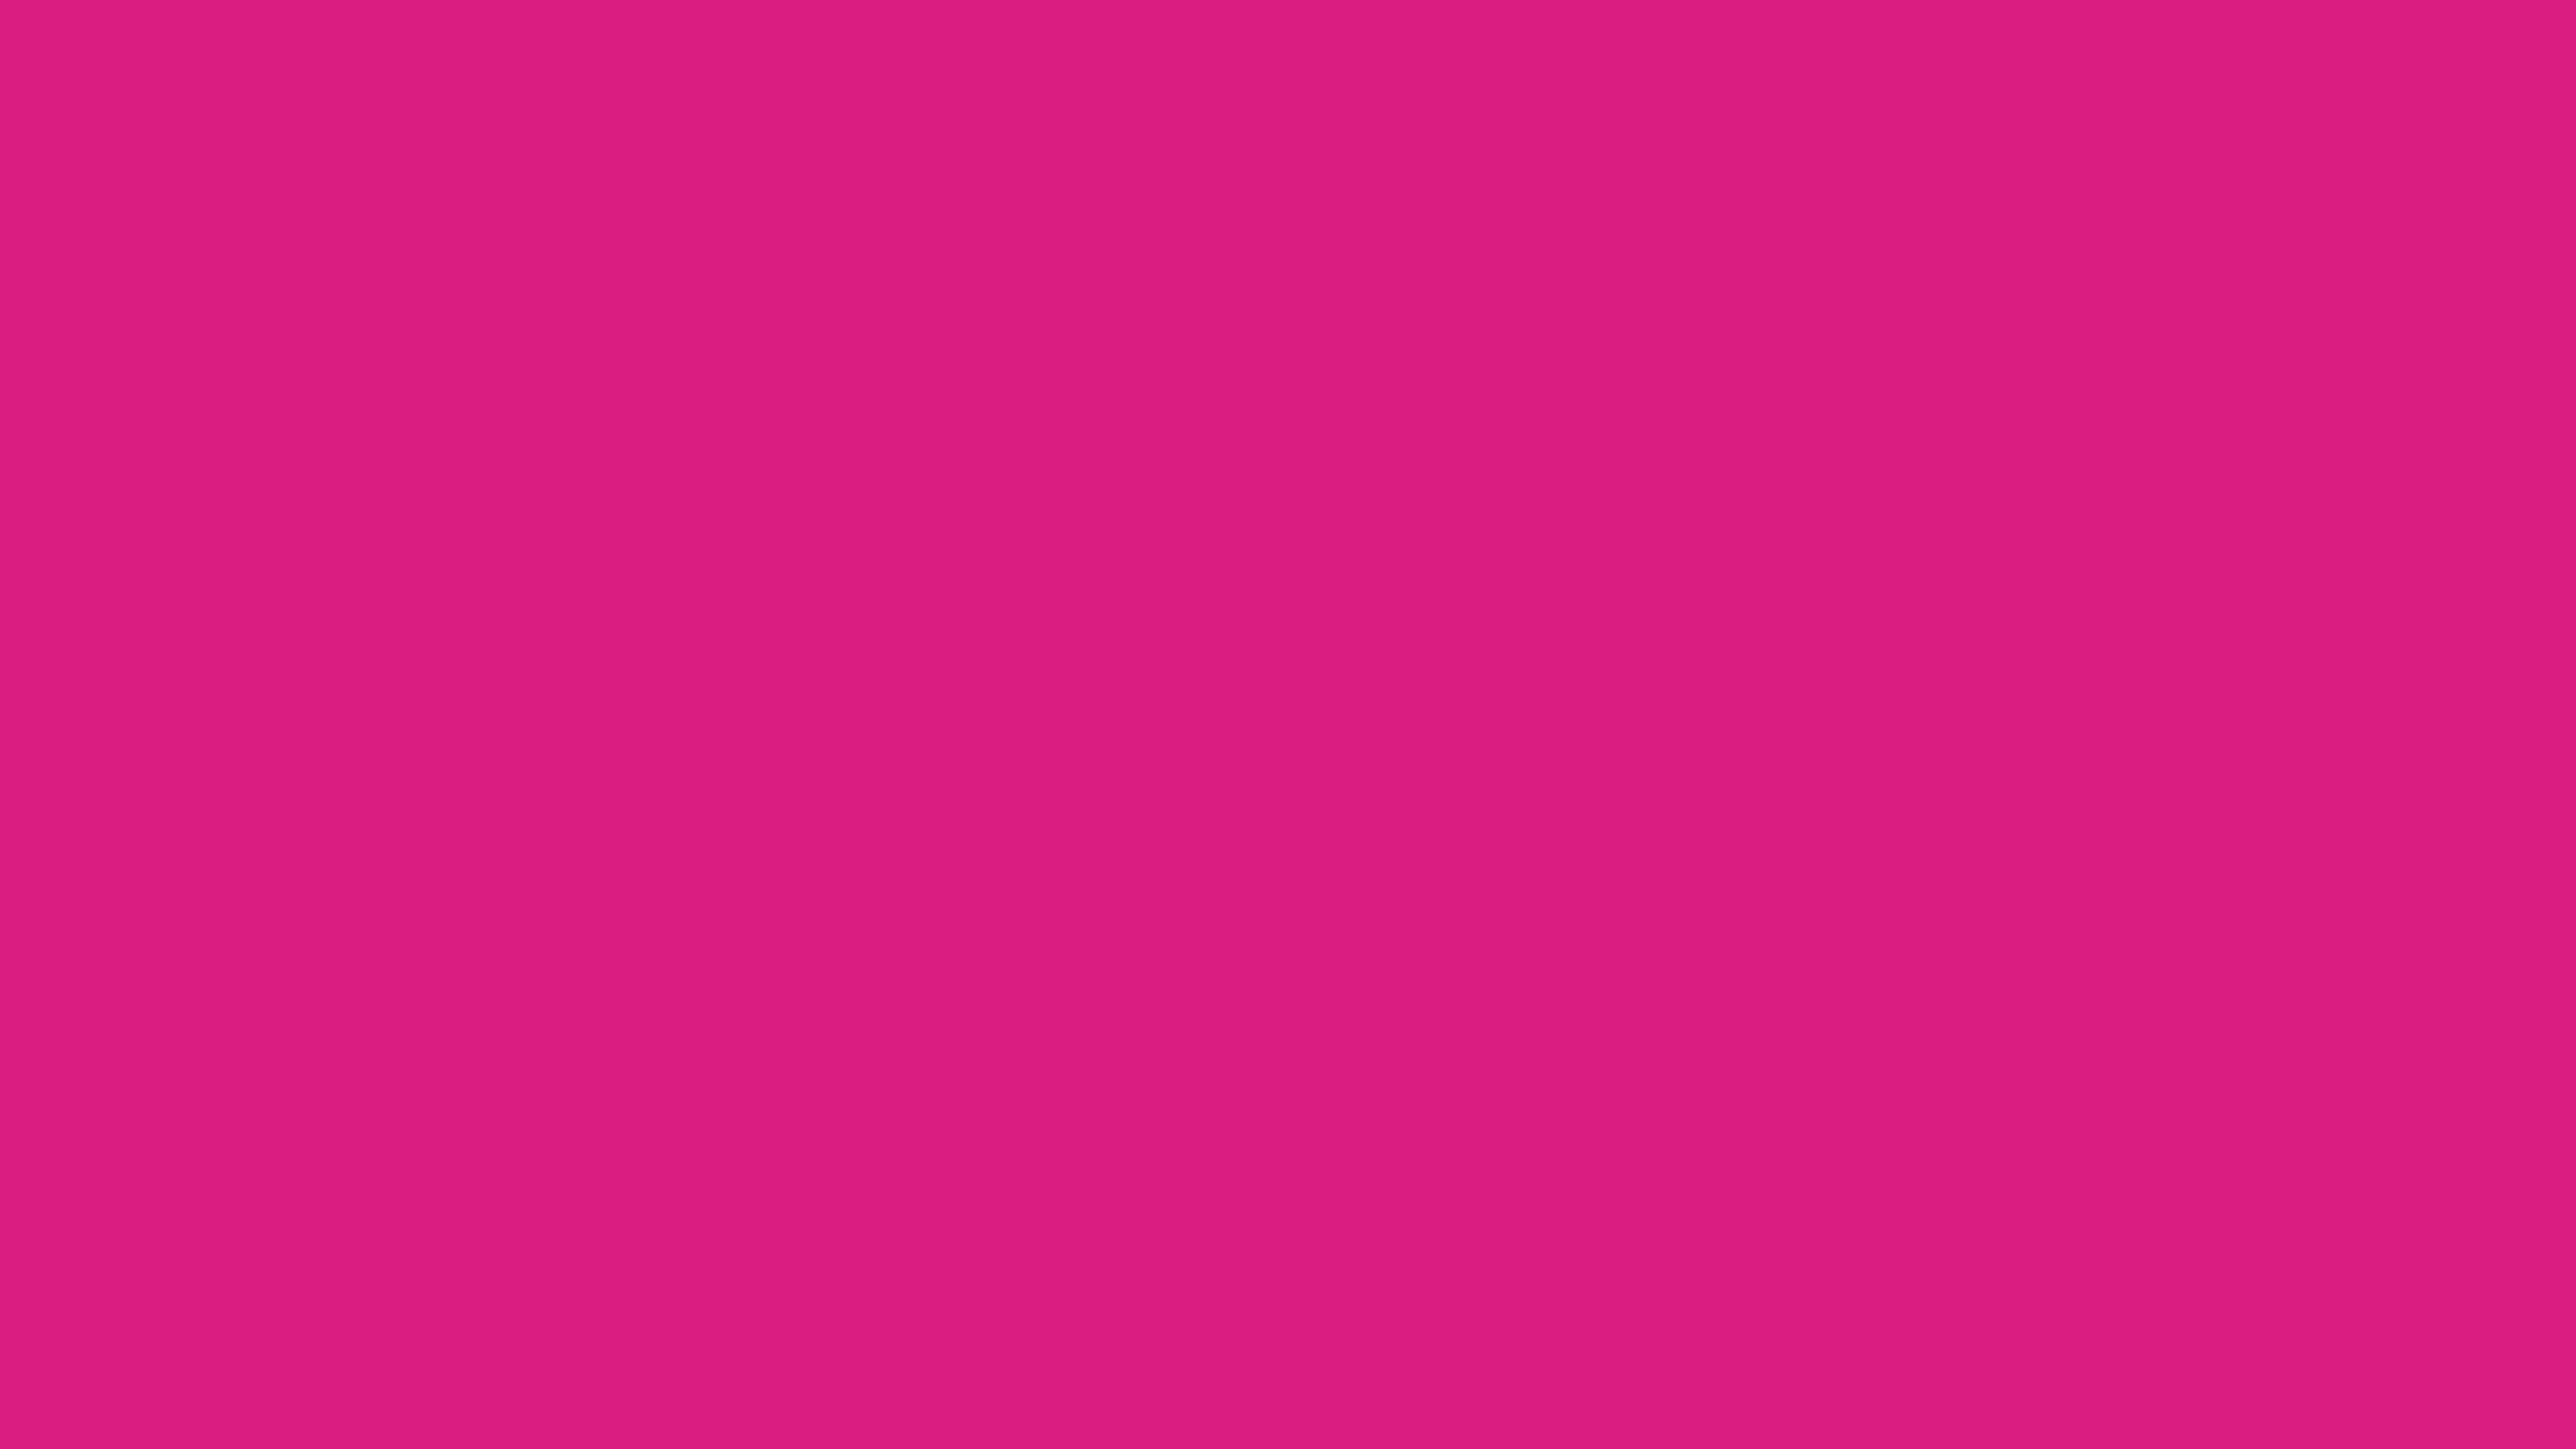 5120x2880 Vivid Cerise Solid Color Background